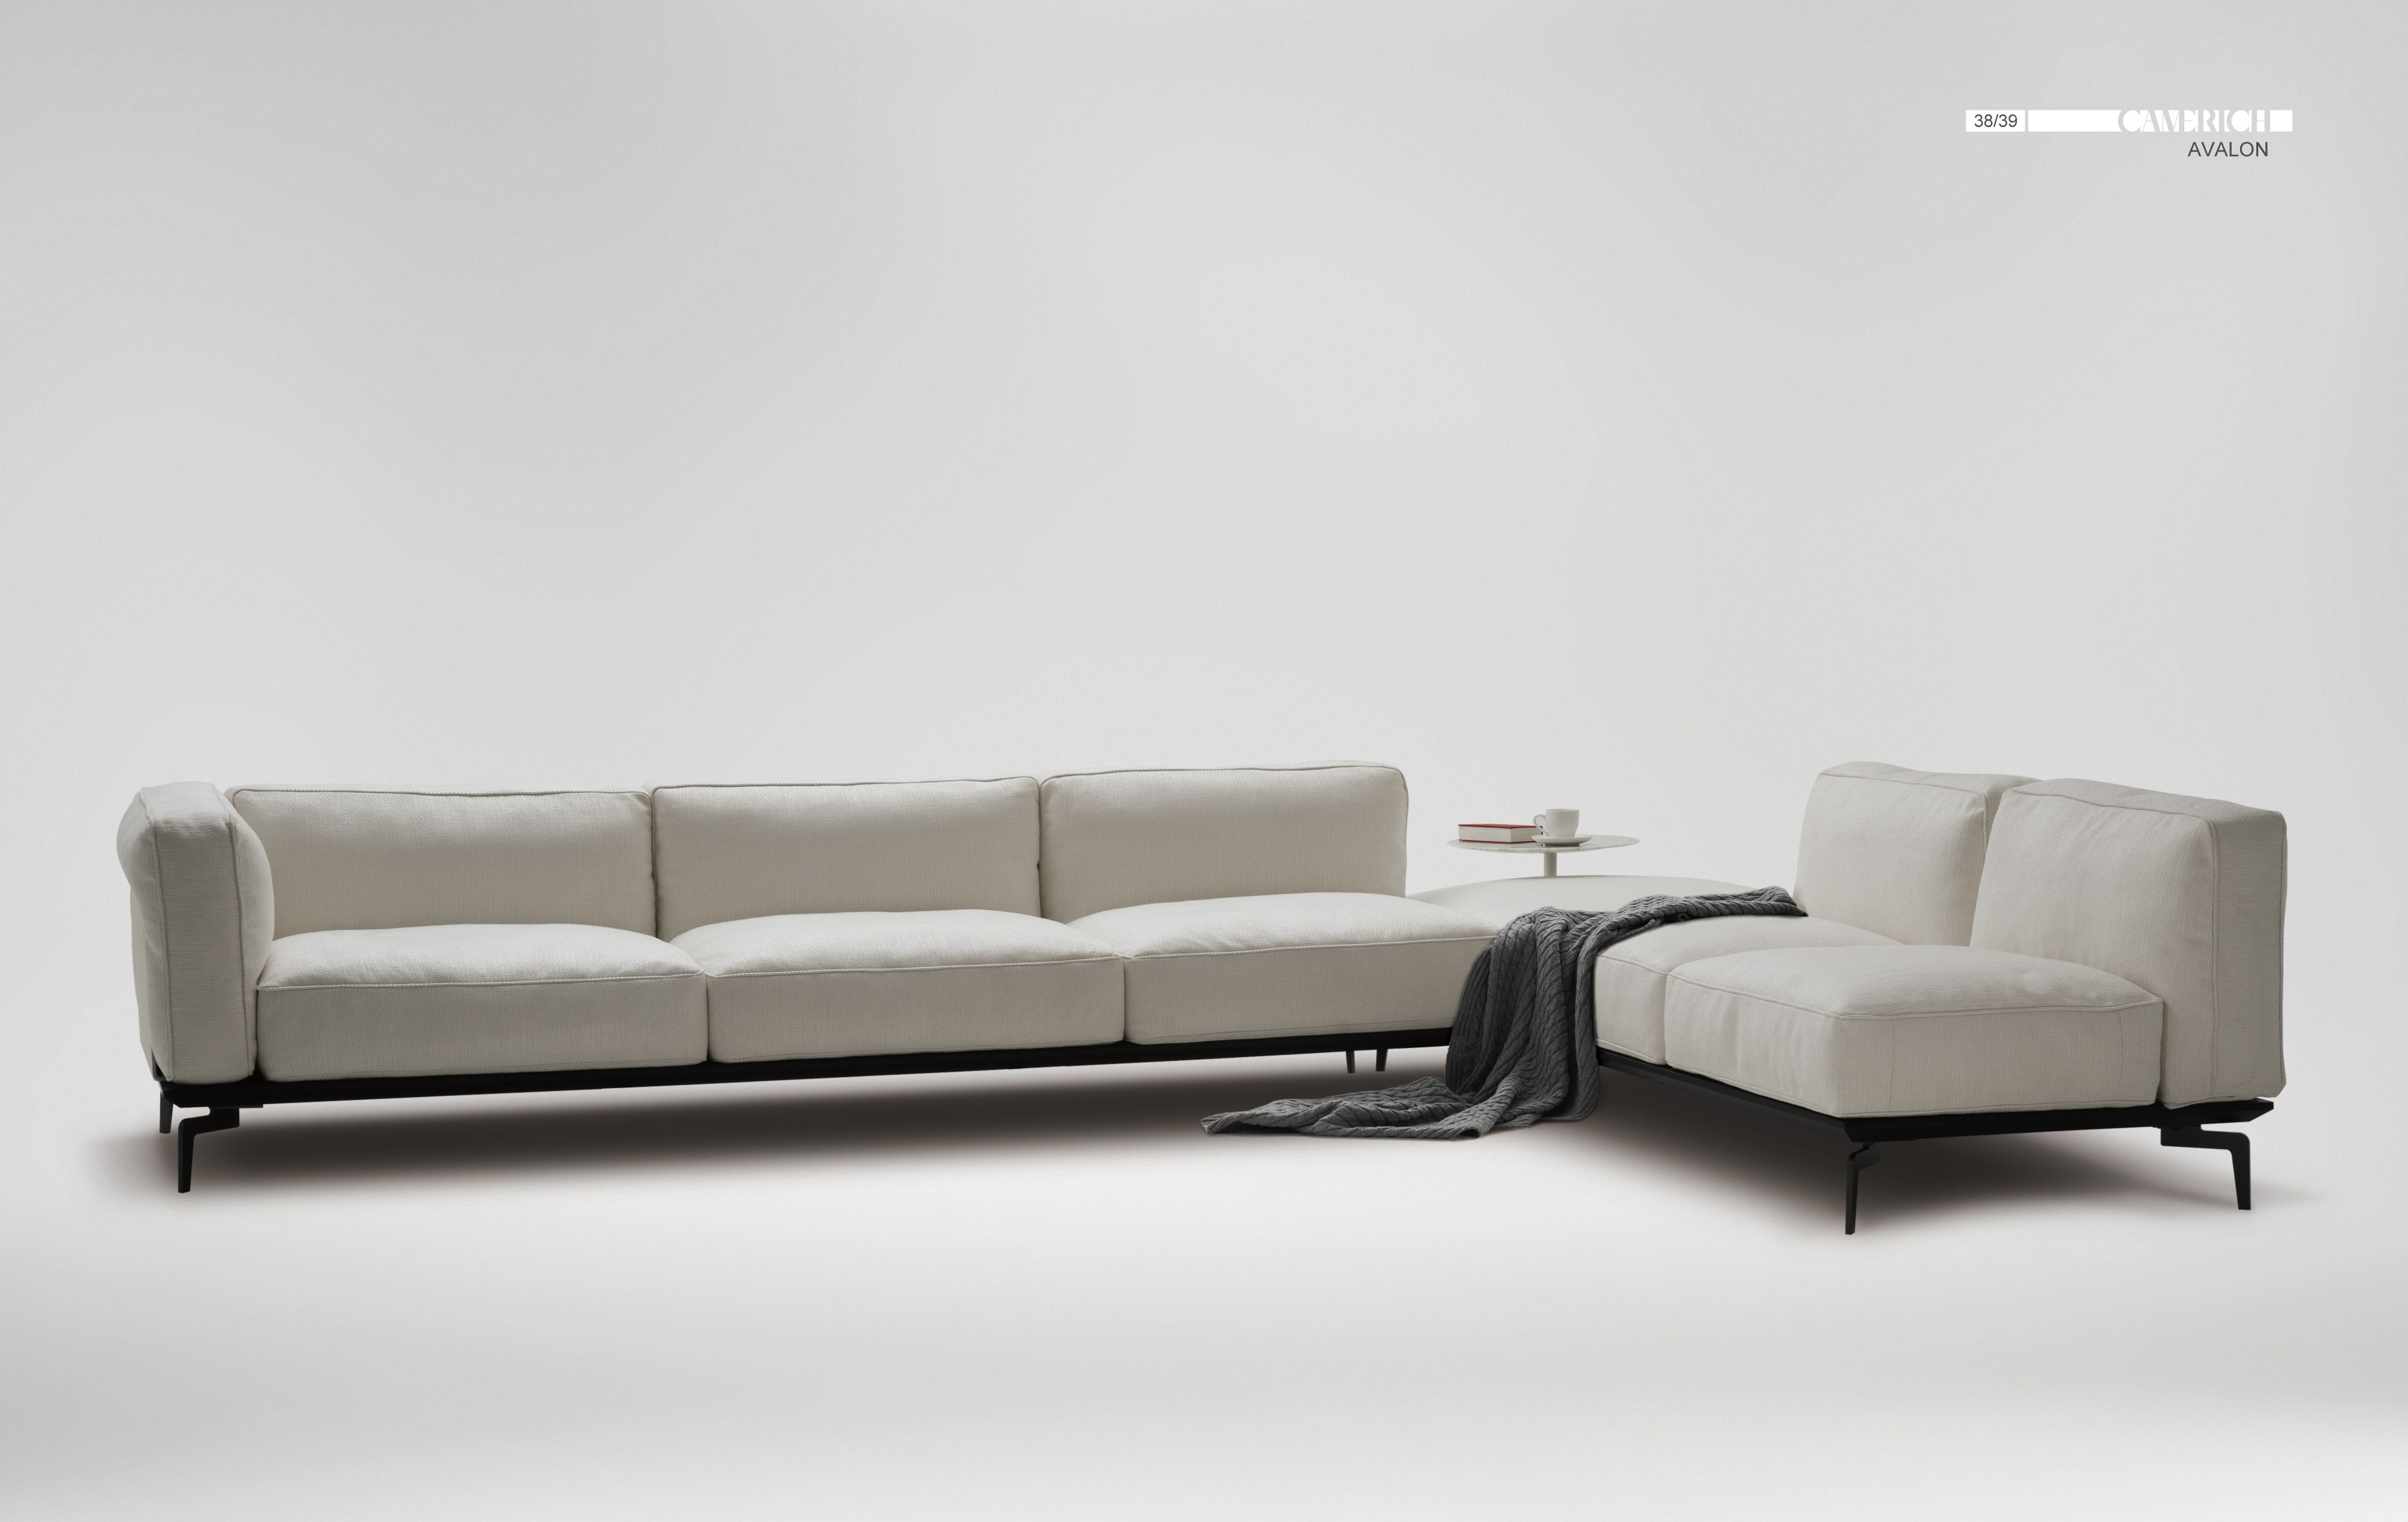 Lazytime plus sofa camerich - Sofa With Foam And Feather Down Seat Cushion Base Cast Steel With Black Painted Finish